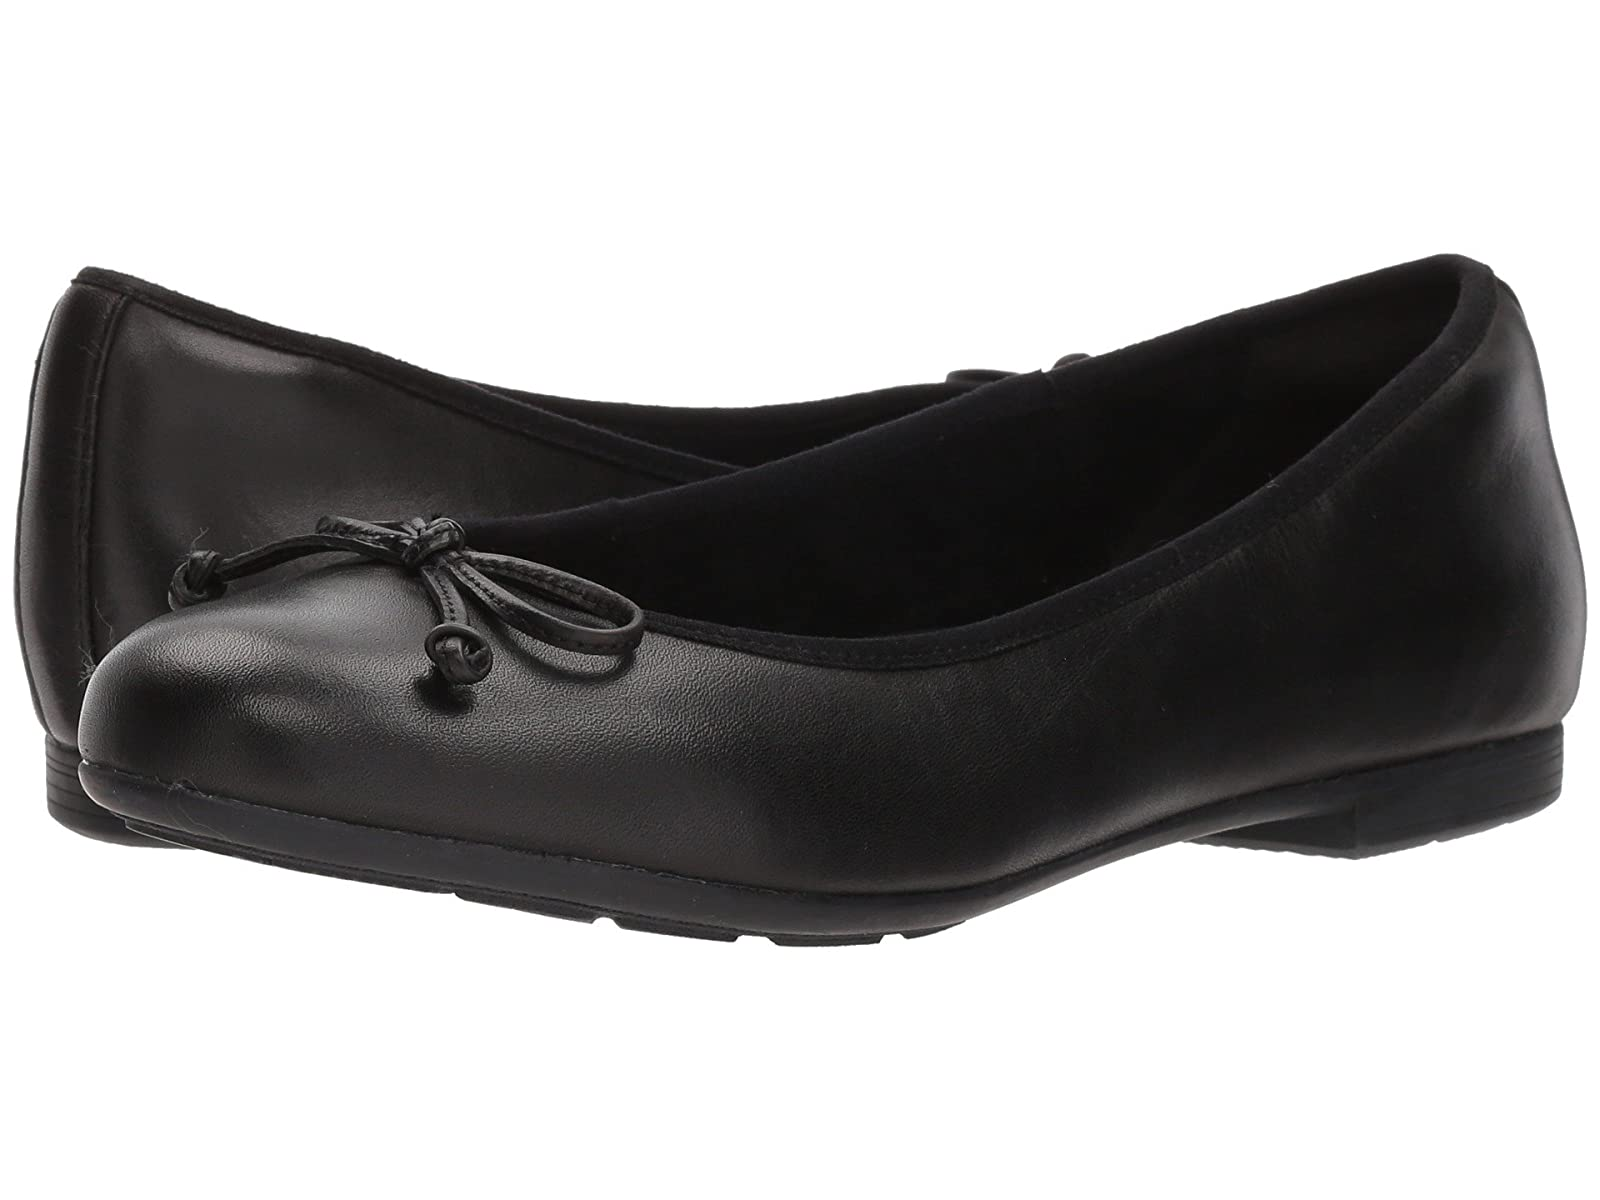 Earth AllegroCheap and distinctive eye-catching shoes